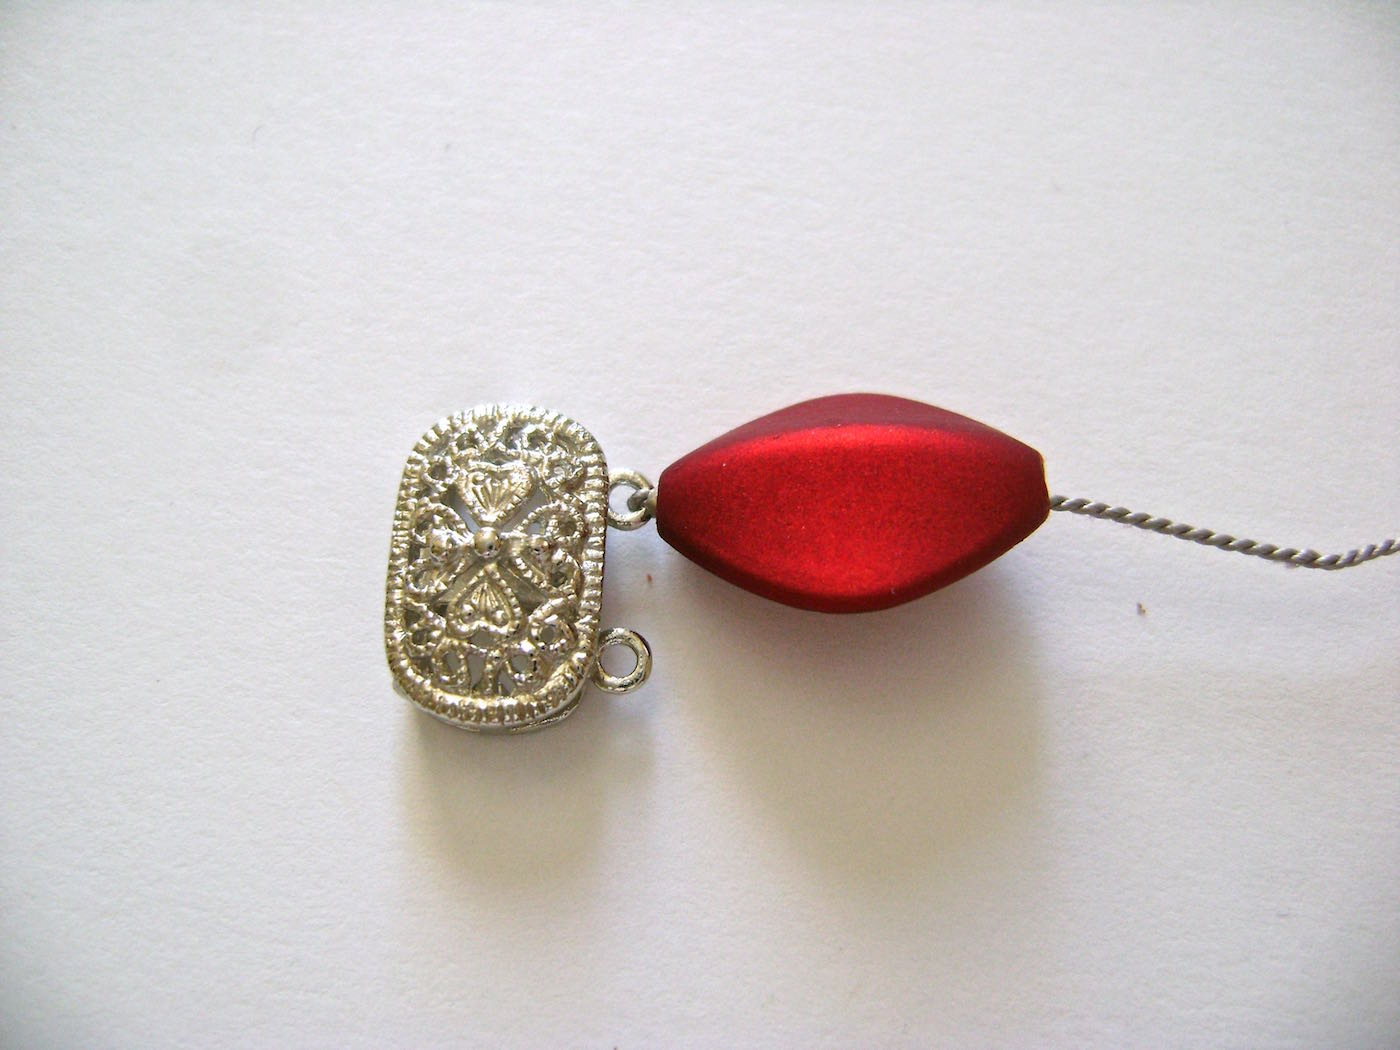 step 4 - Slip a red bead onto the cord and push it toward the clasp. The bead will cover the crimp.